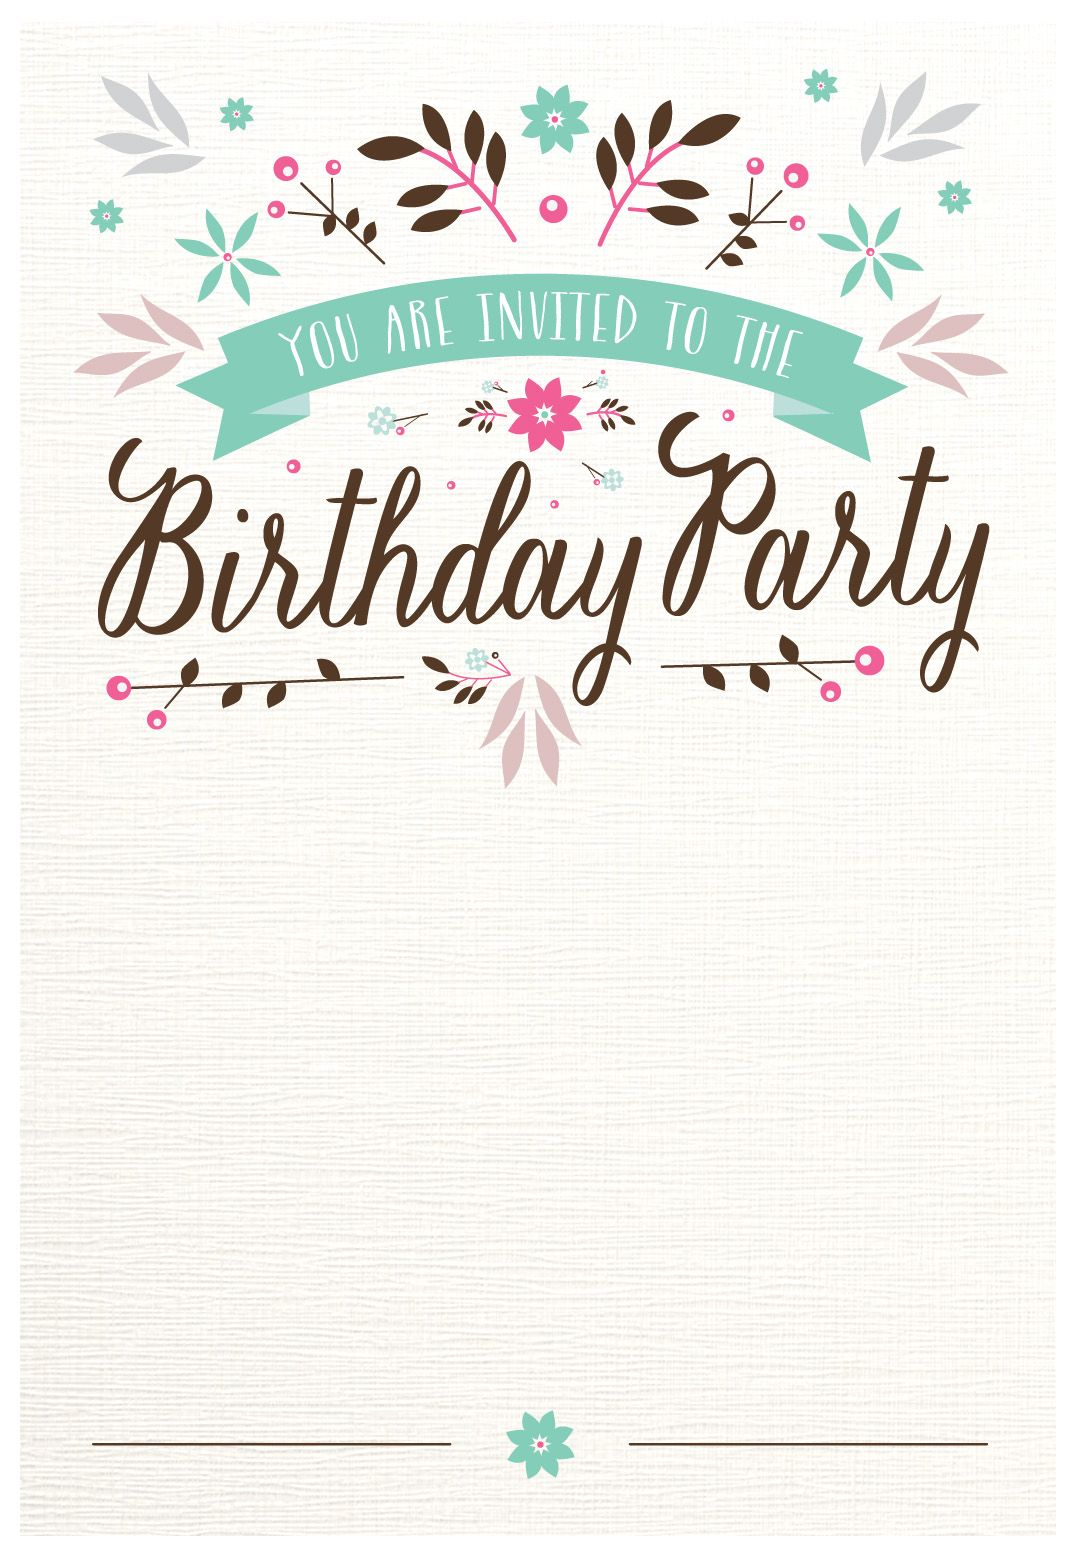 Flat Floral Free Printable Birthday Invitation Template - Princess birthday invitation templates free